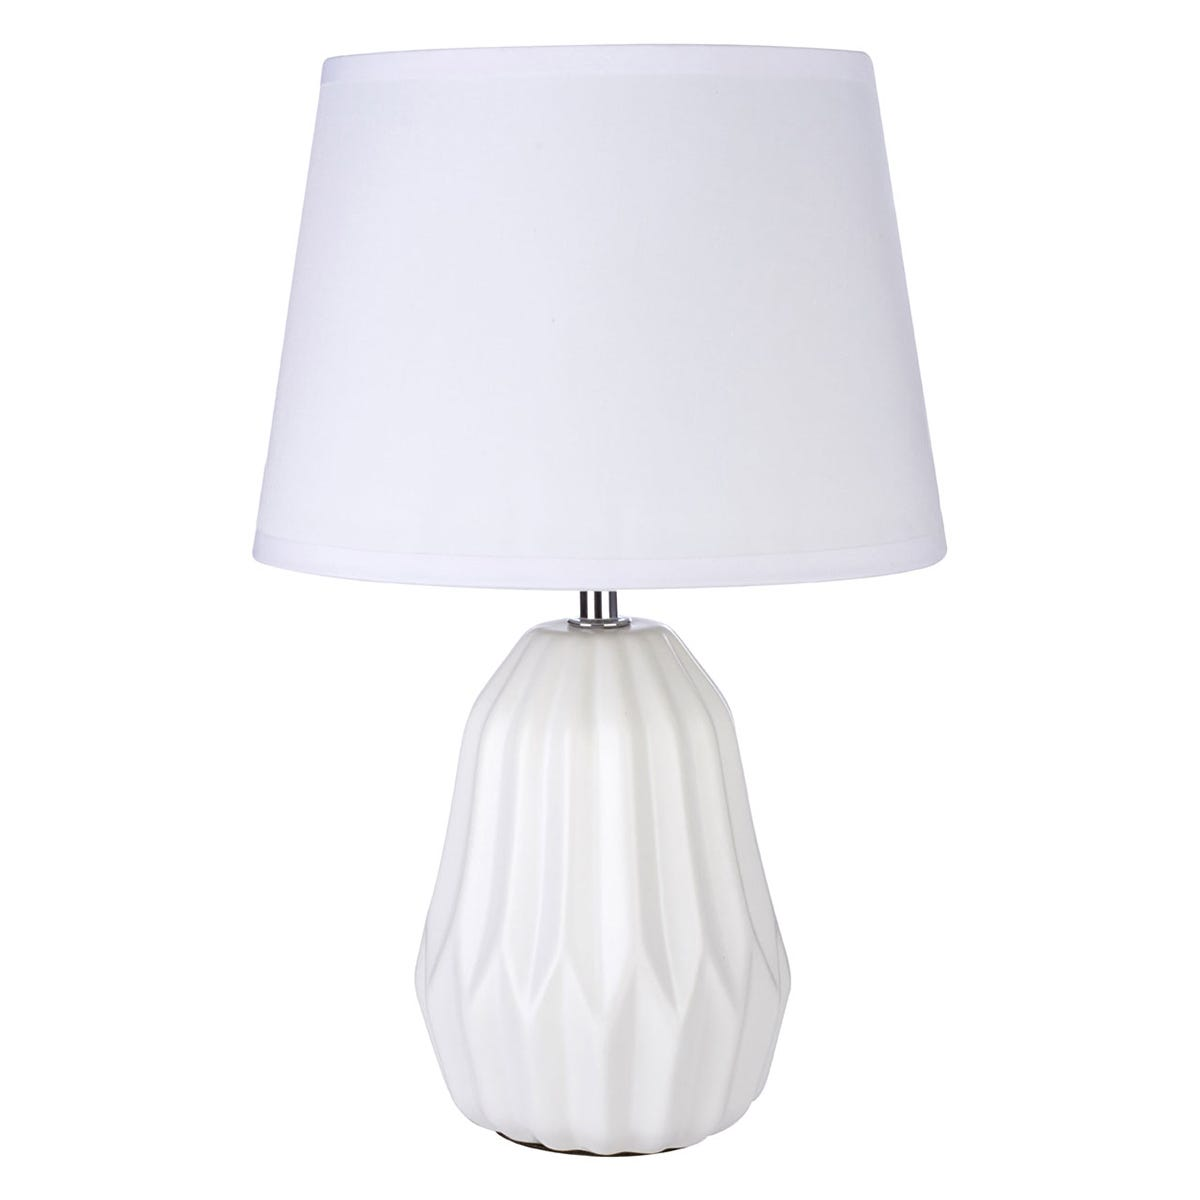 Premier Housewares Winslet Table Lamp in White Ceramic with White Fabric Shade